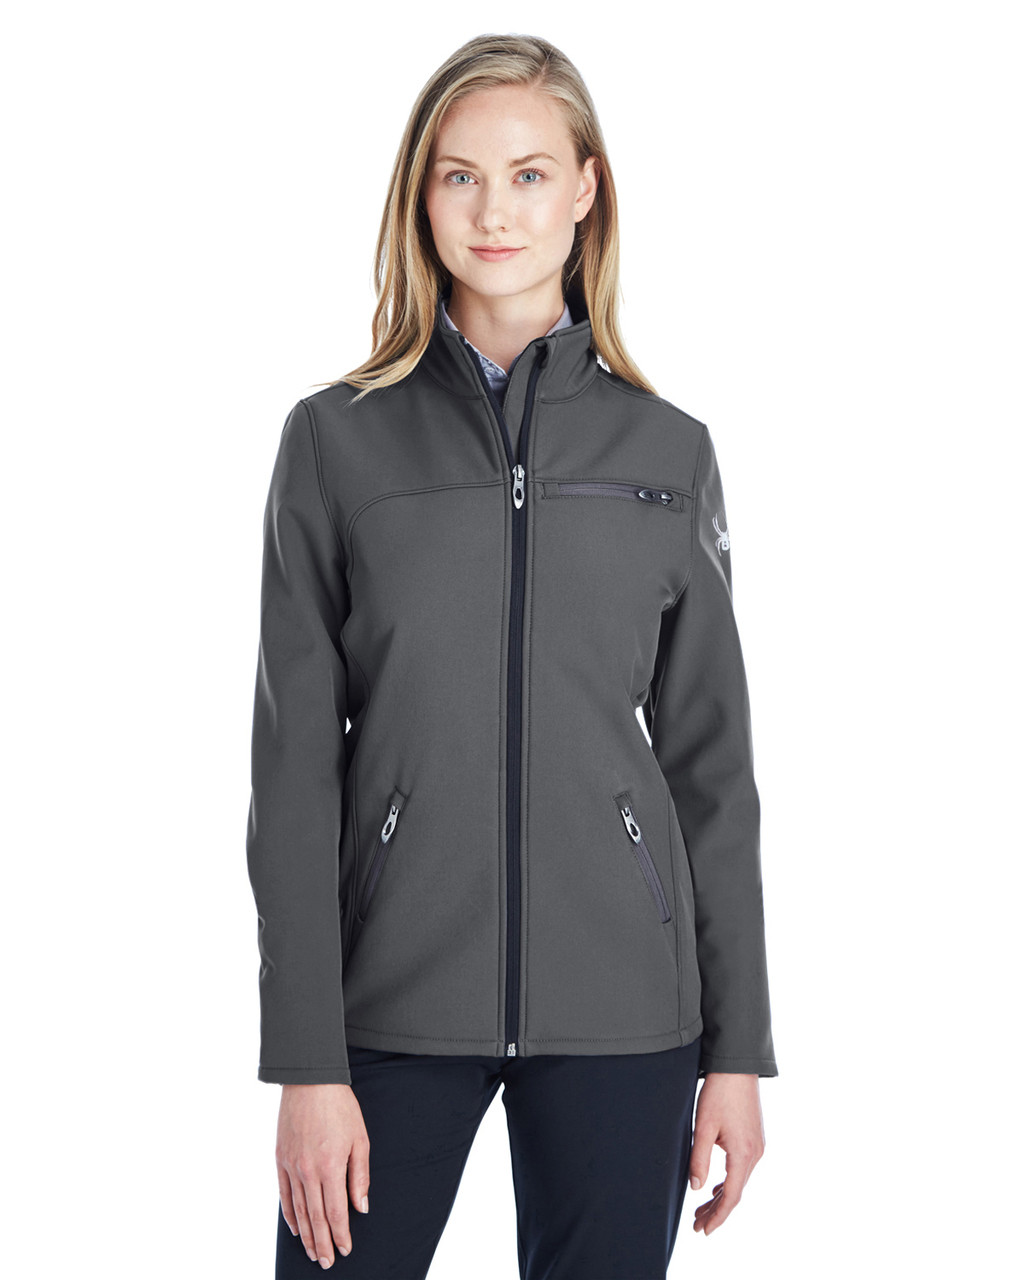 Polar/White - 187337 Spyder Ladies' Transport Softshell Jacket | BlankClothing.ca